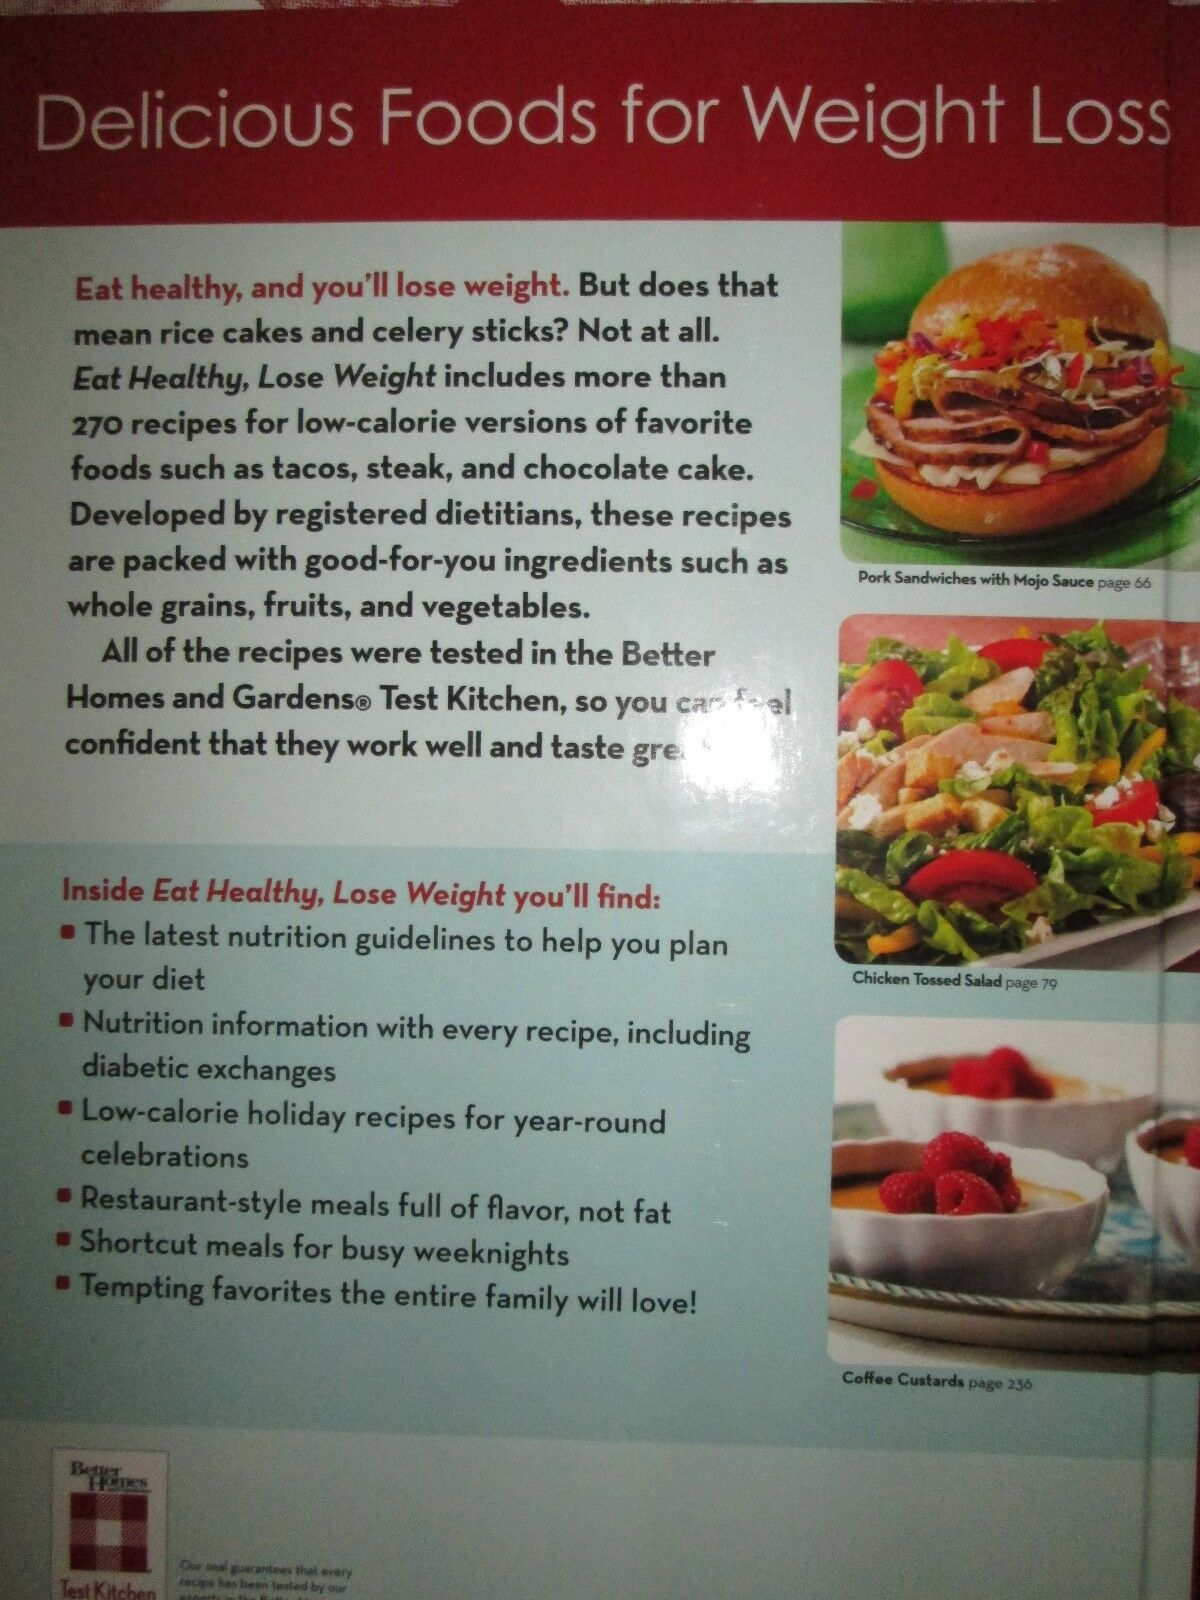 Better Homes and Gardens Eat Healthy Lose Weight 270 Recipes 2010   eBay